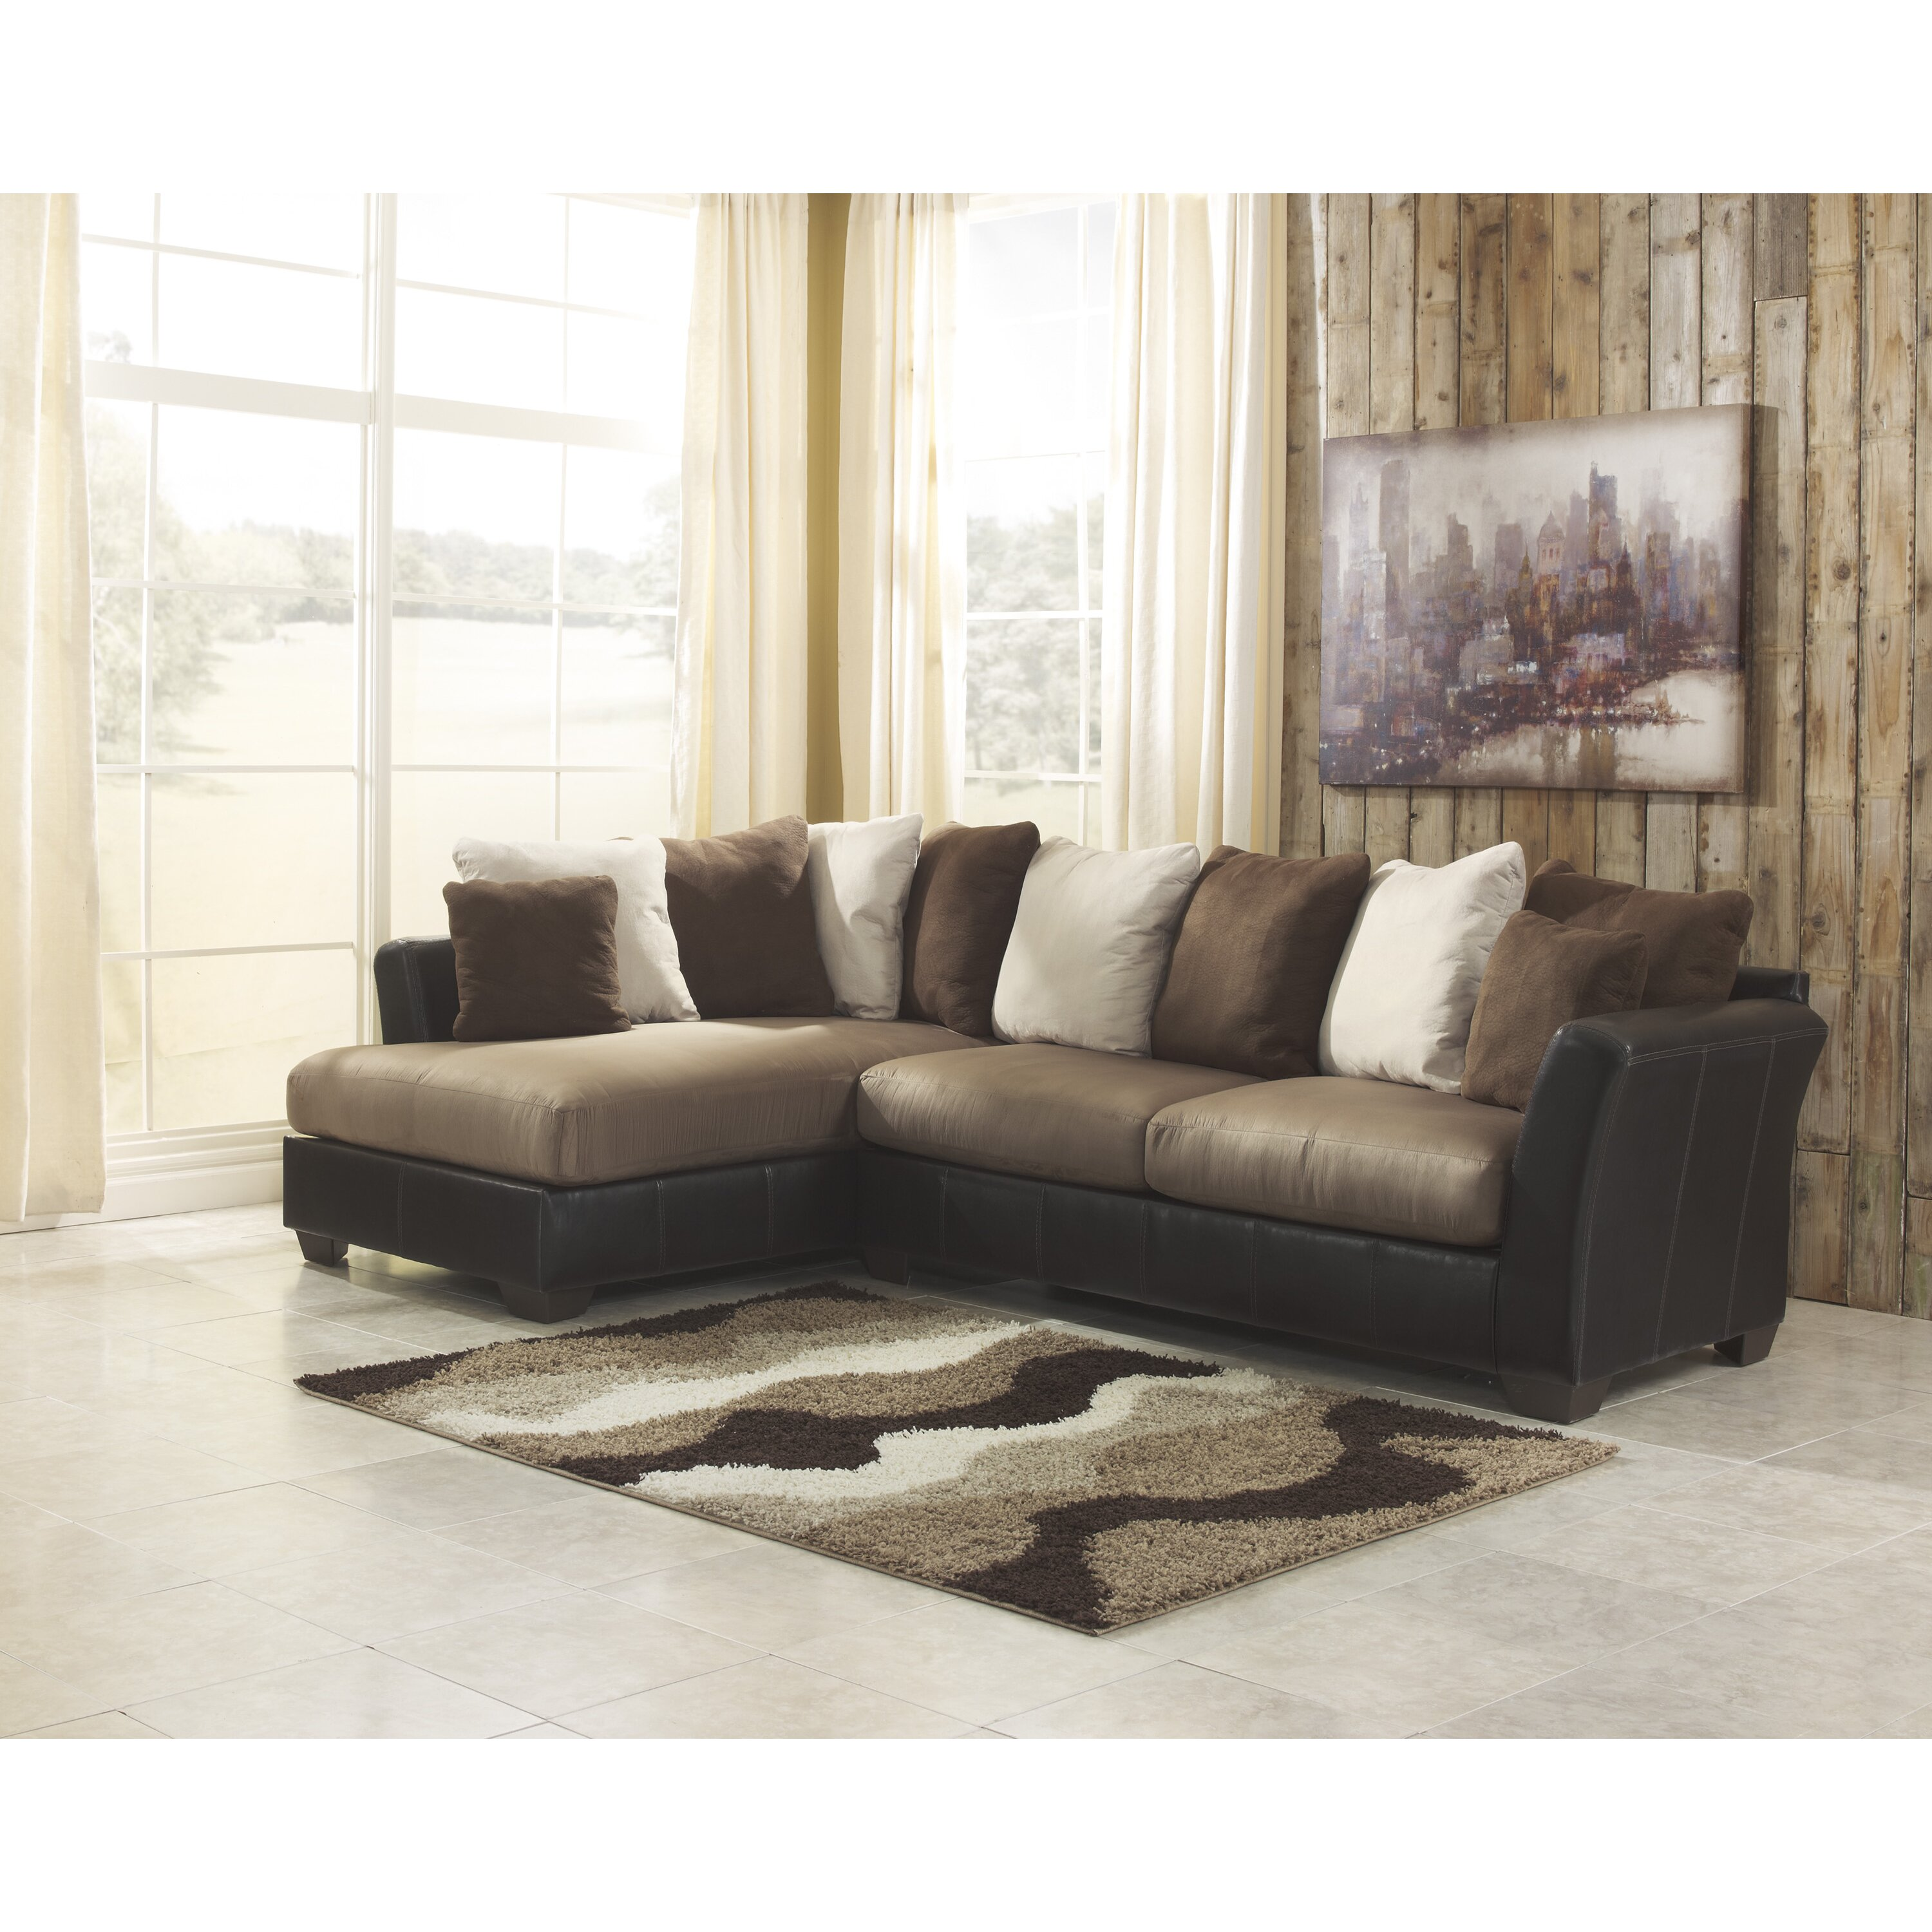 Ashley Furniture Sectionals: Signature Design By Ashley Larwill Sectional & Reviews